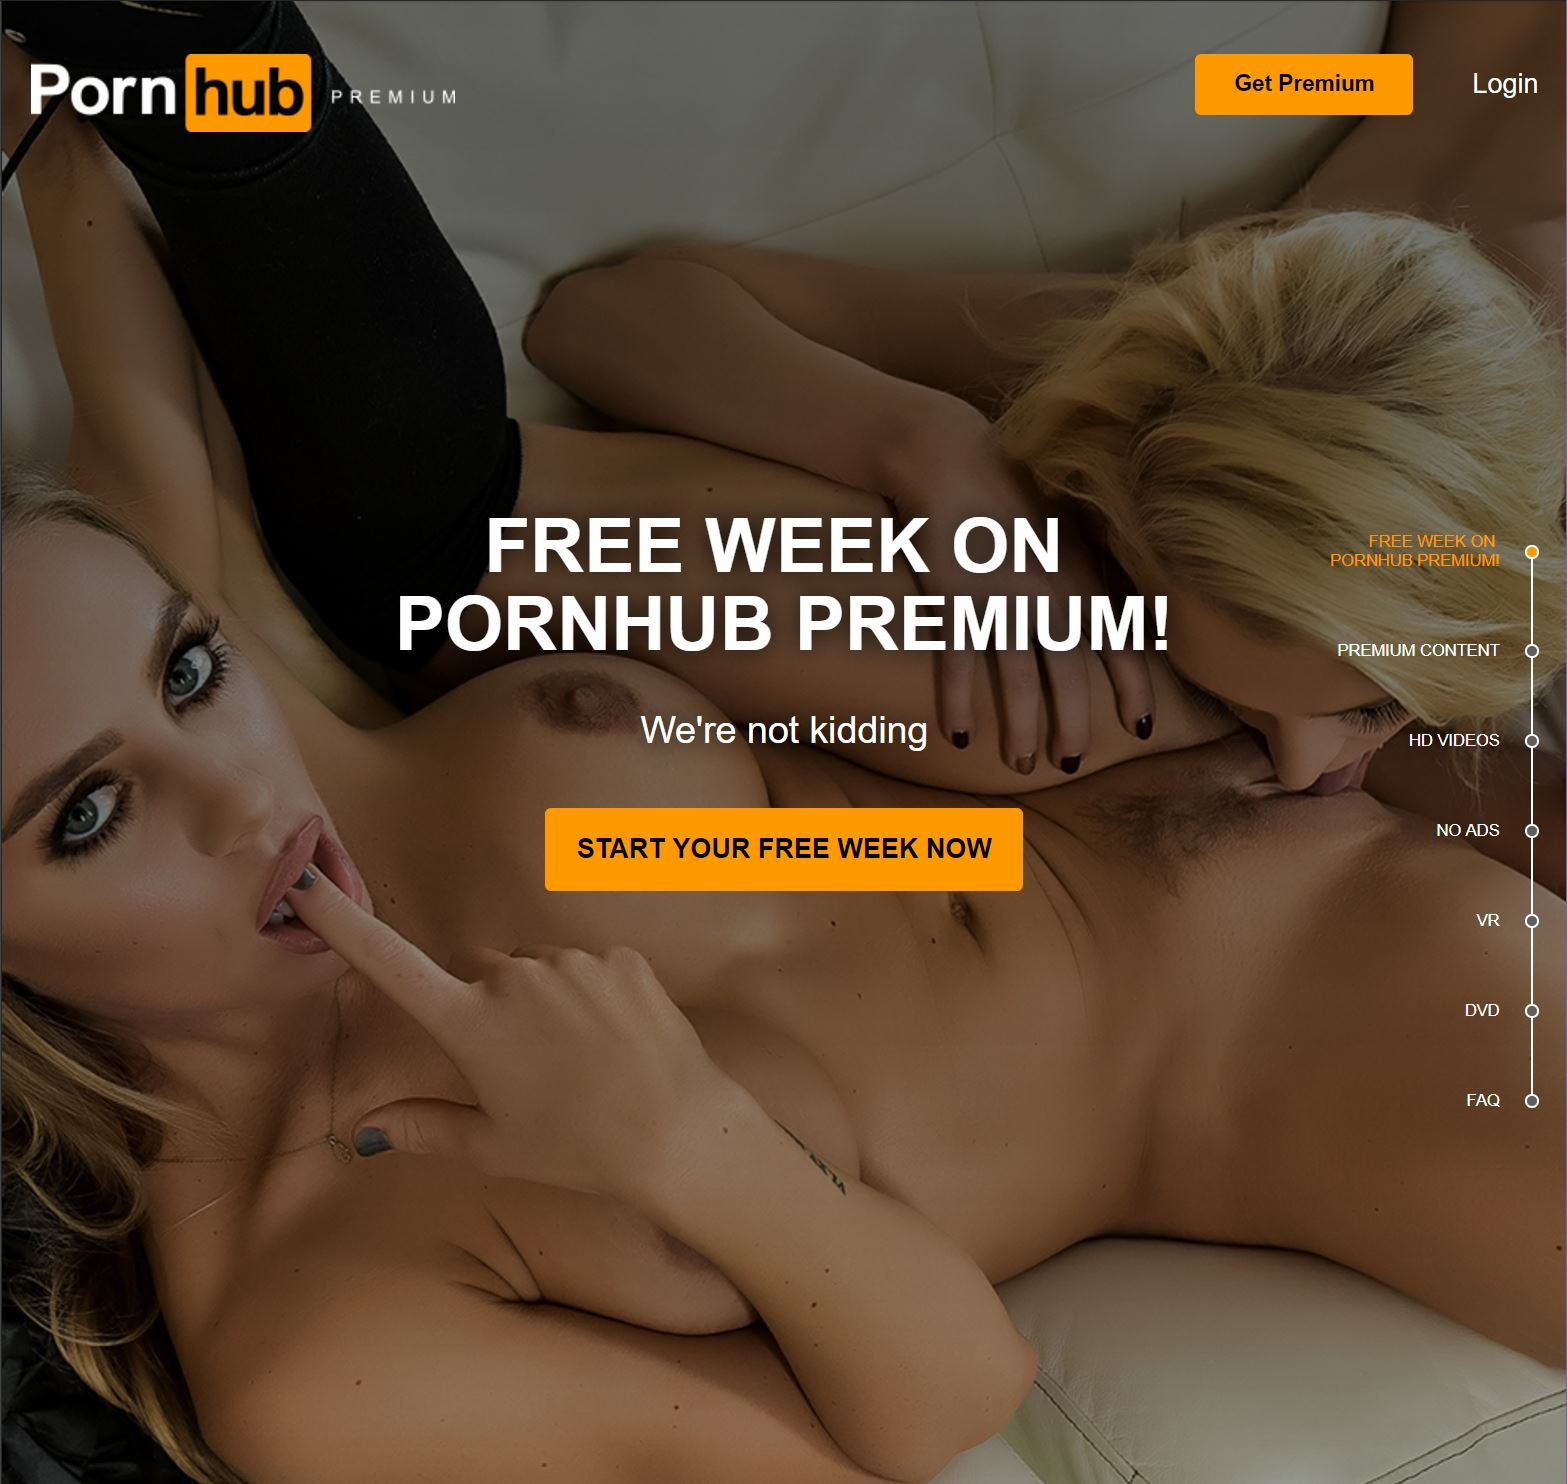 pornhub-screenshot